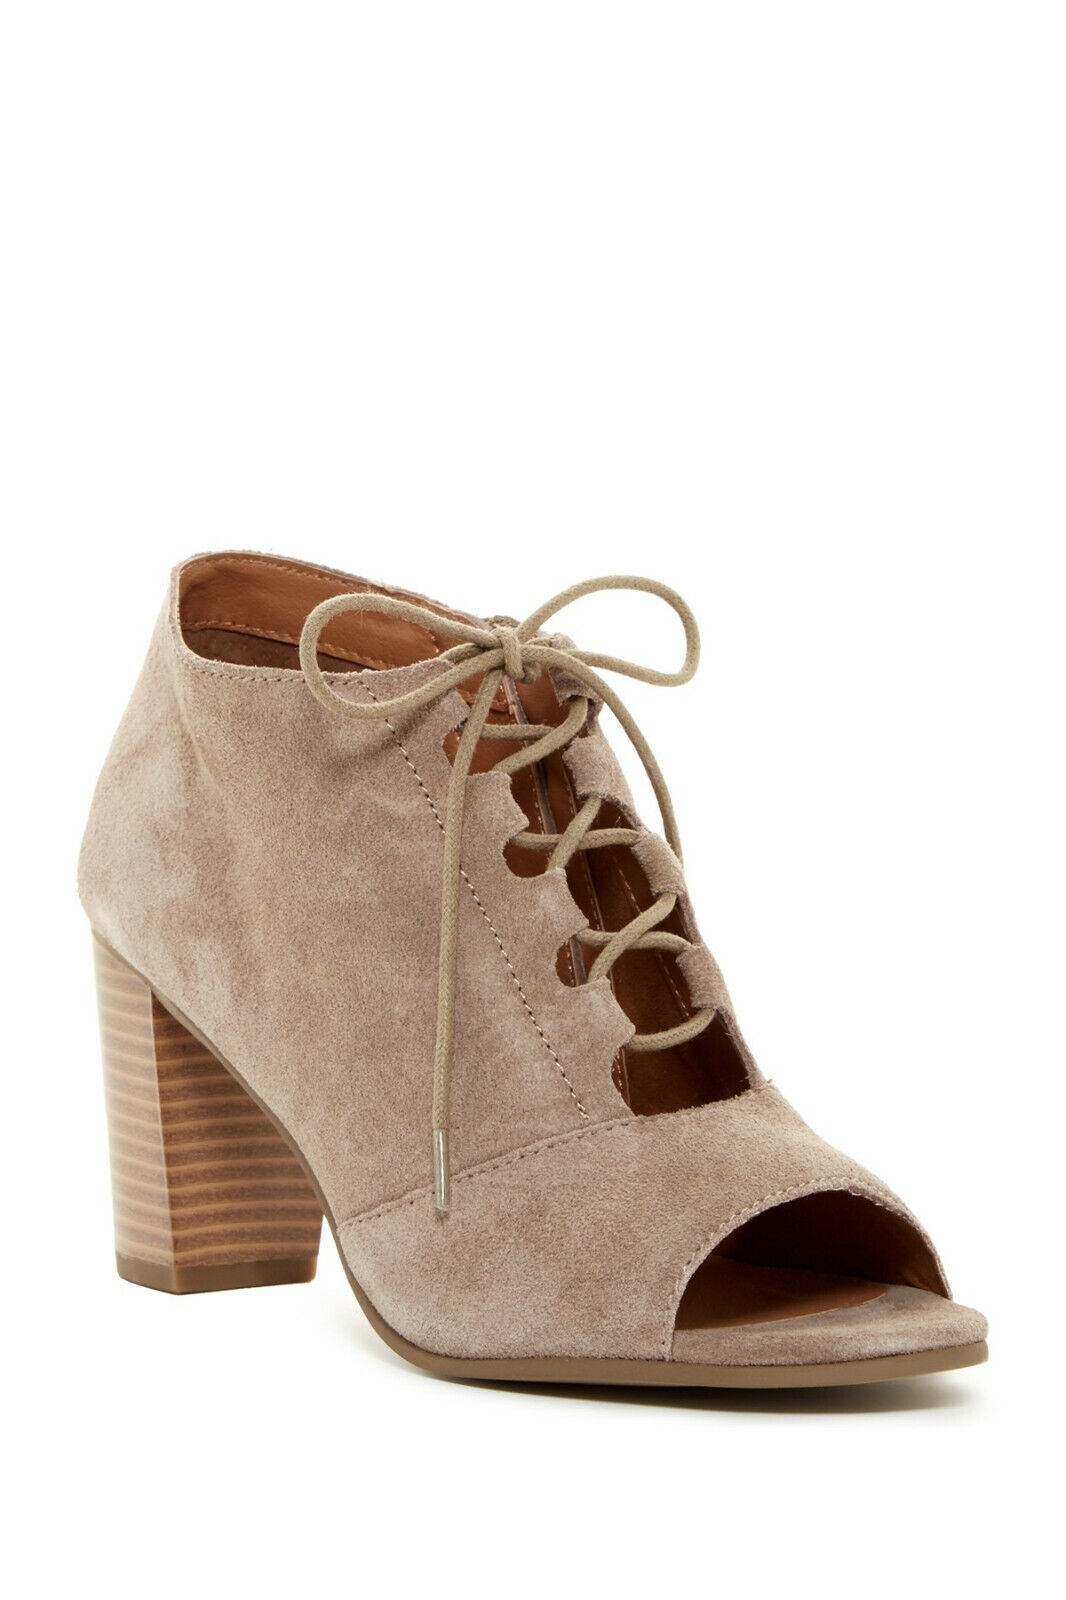 Susina Taupe Shay Lace Peep Toe Suede Ankle Ankle Ankle Boots Booties Sz 9M 99492f